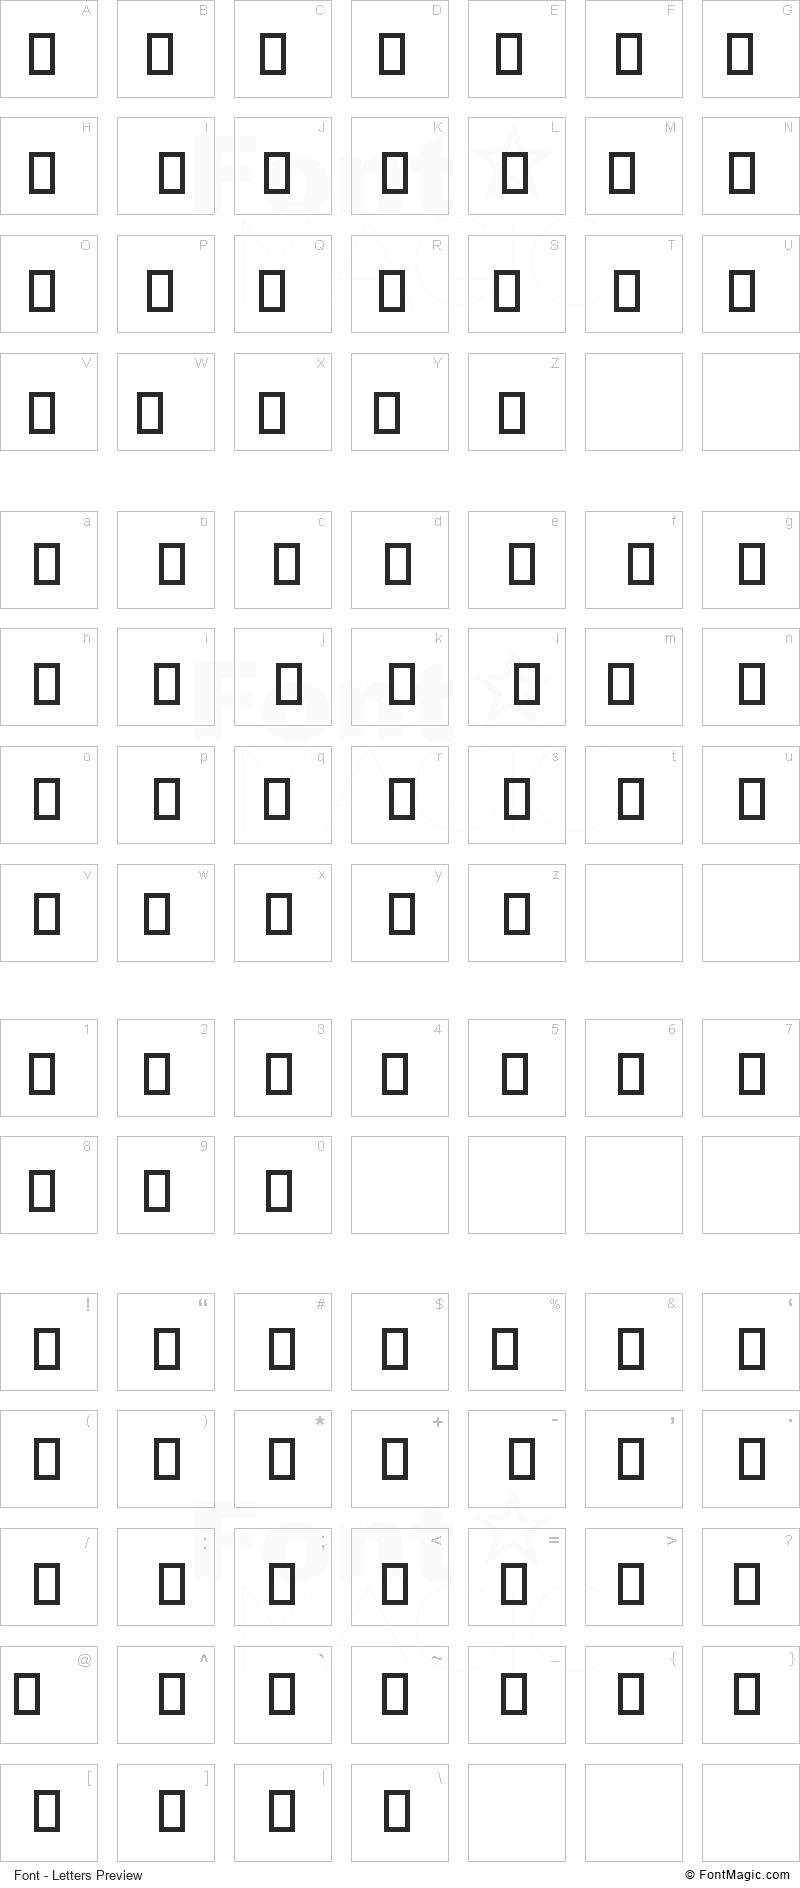 Banksy Font - All Latters Preview Chart